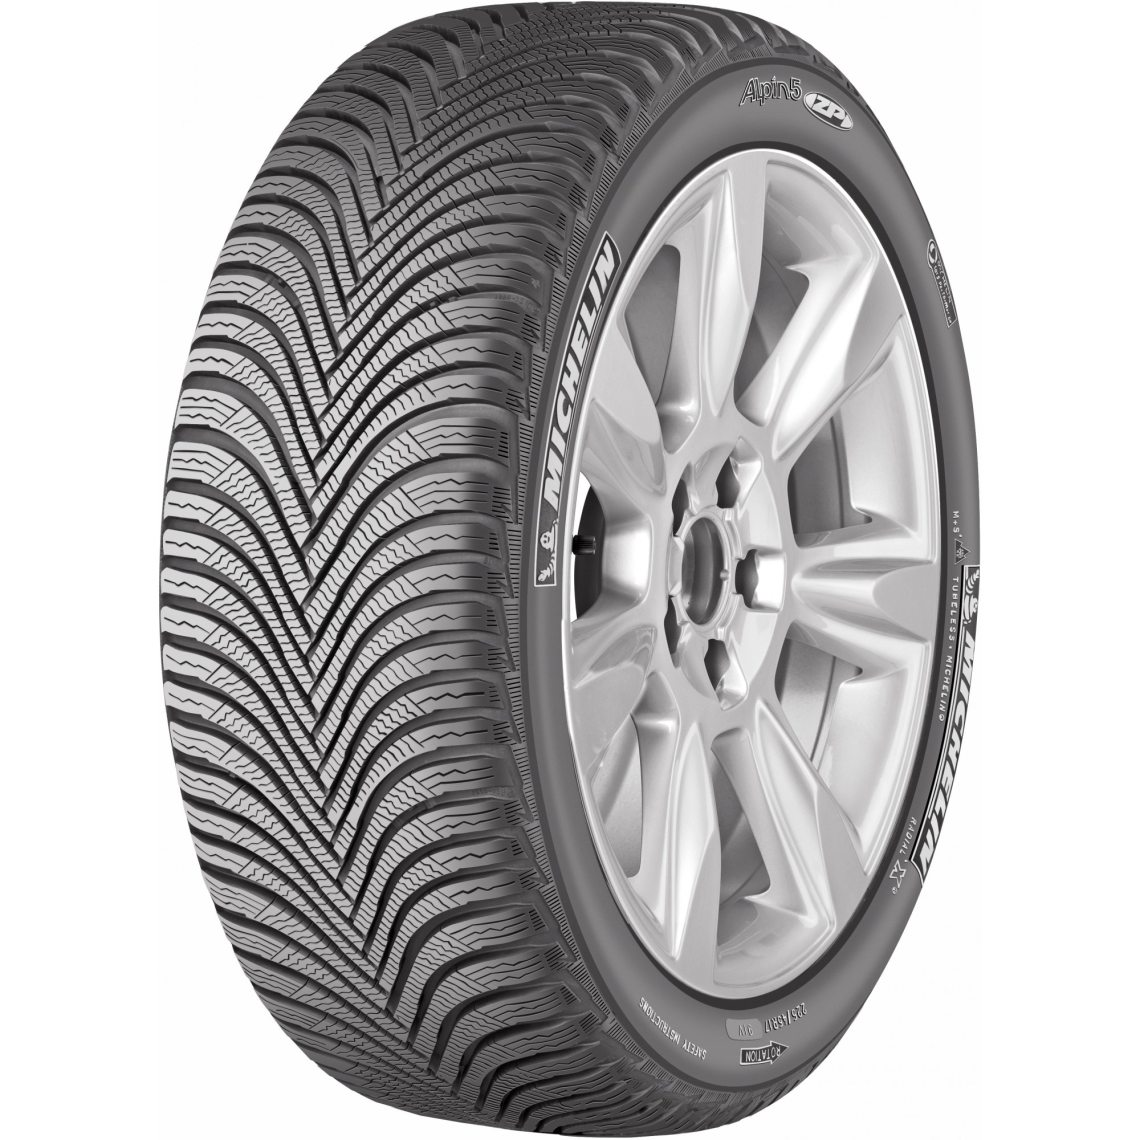 Anvelopa iarna Michelin Alpin 5 195/65 R15 91T